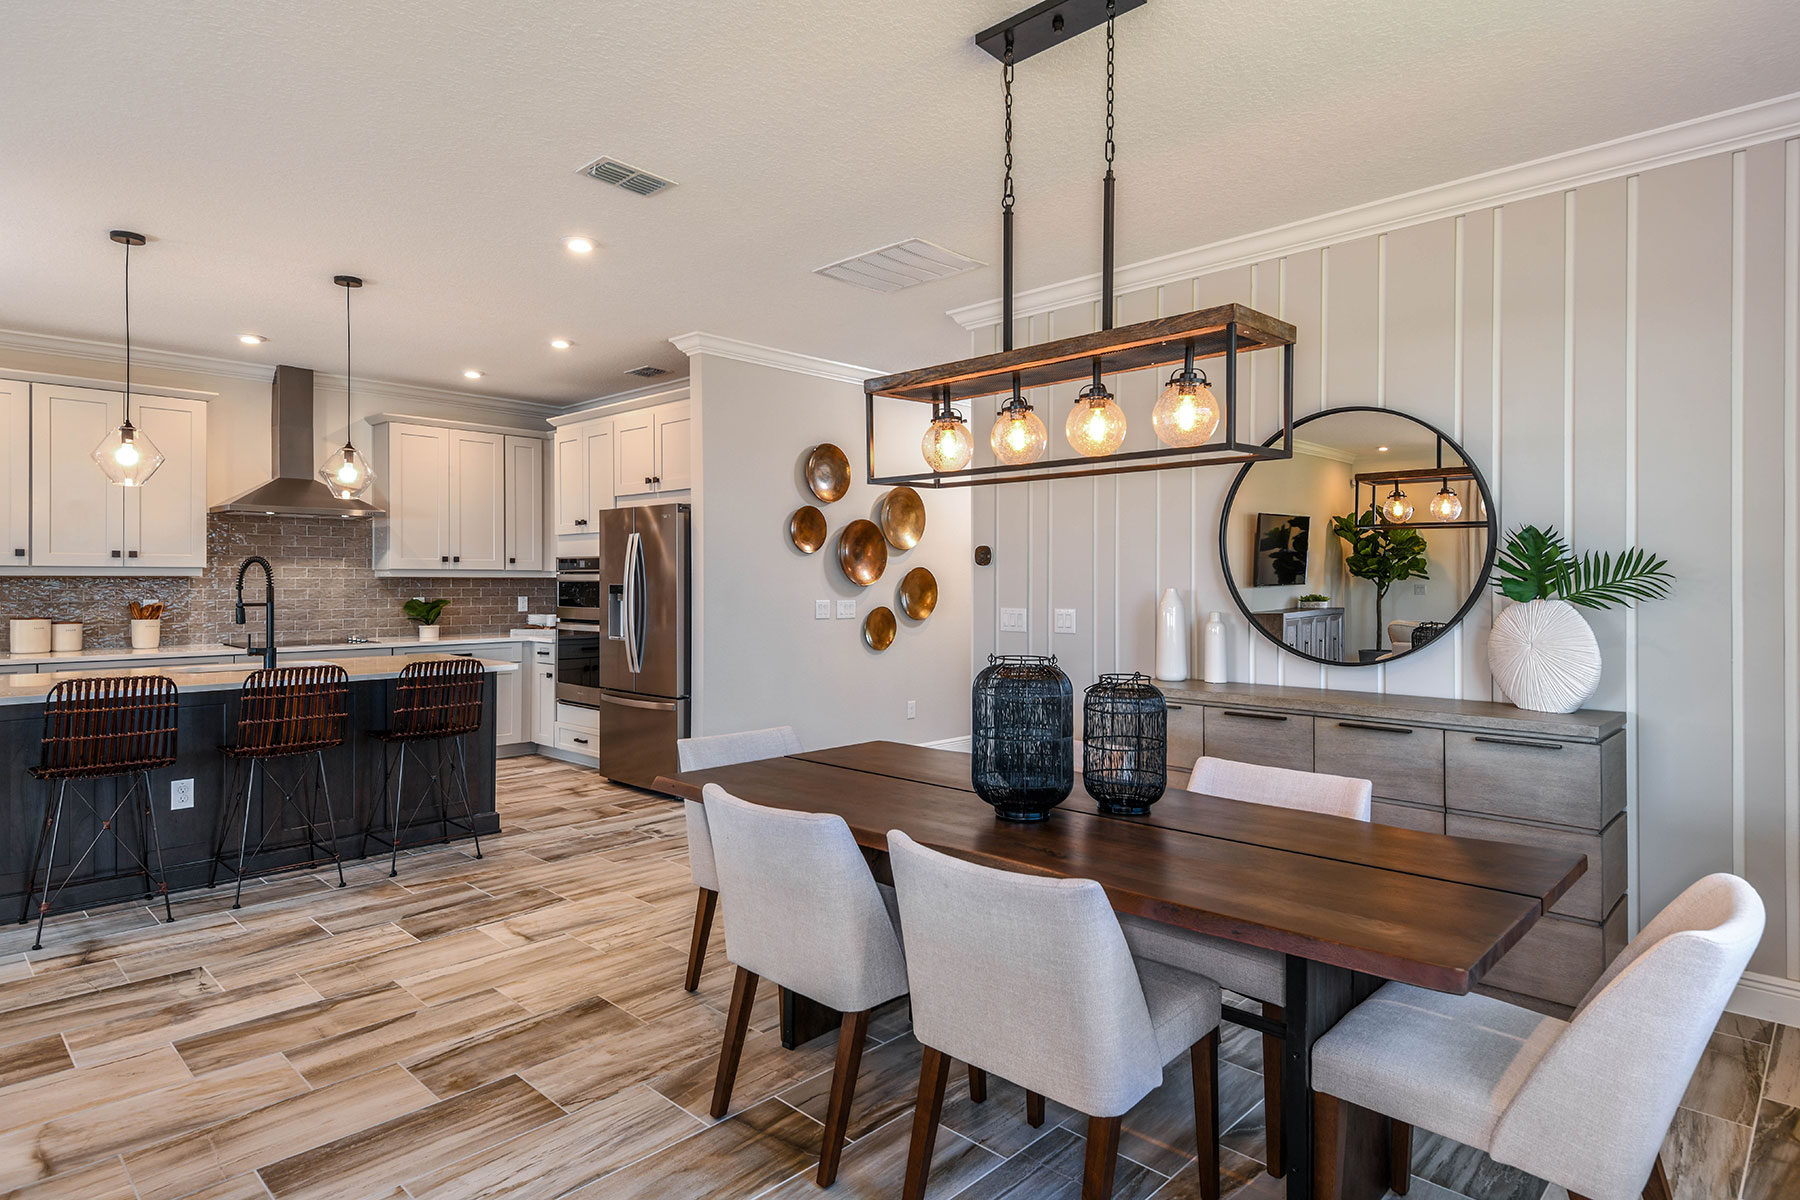 Elm Plan Dining at Parkview at Long Lake Ranch in Lutz Florida by Mattamy Homes